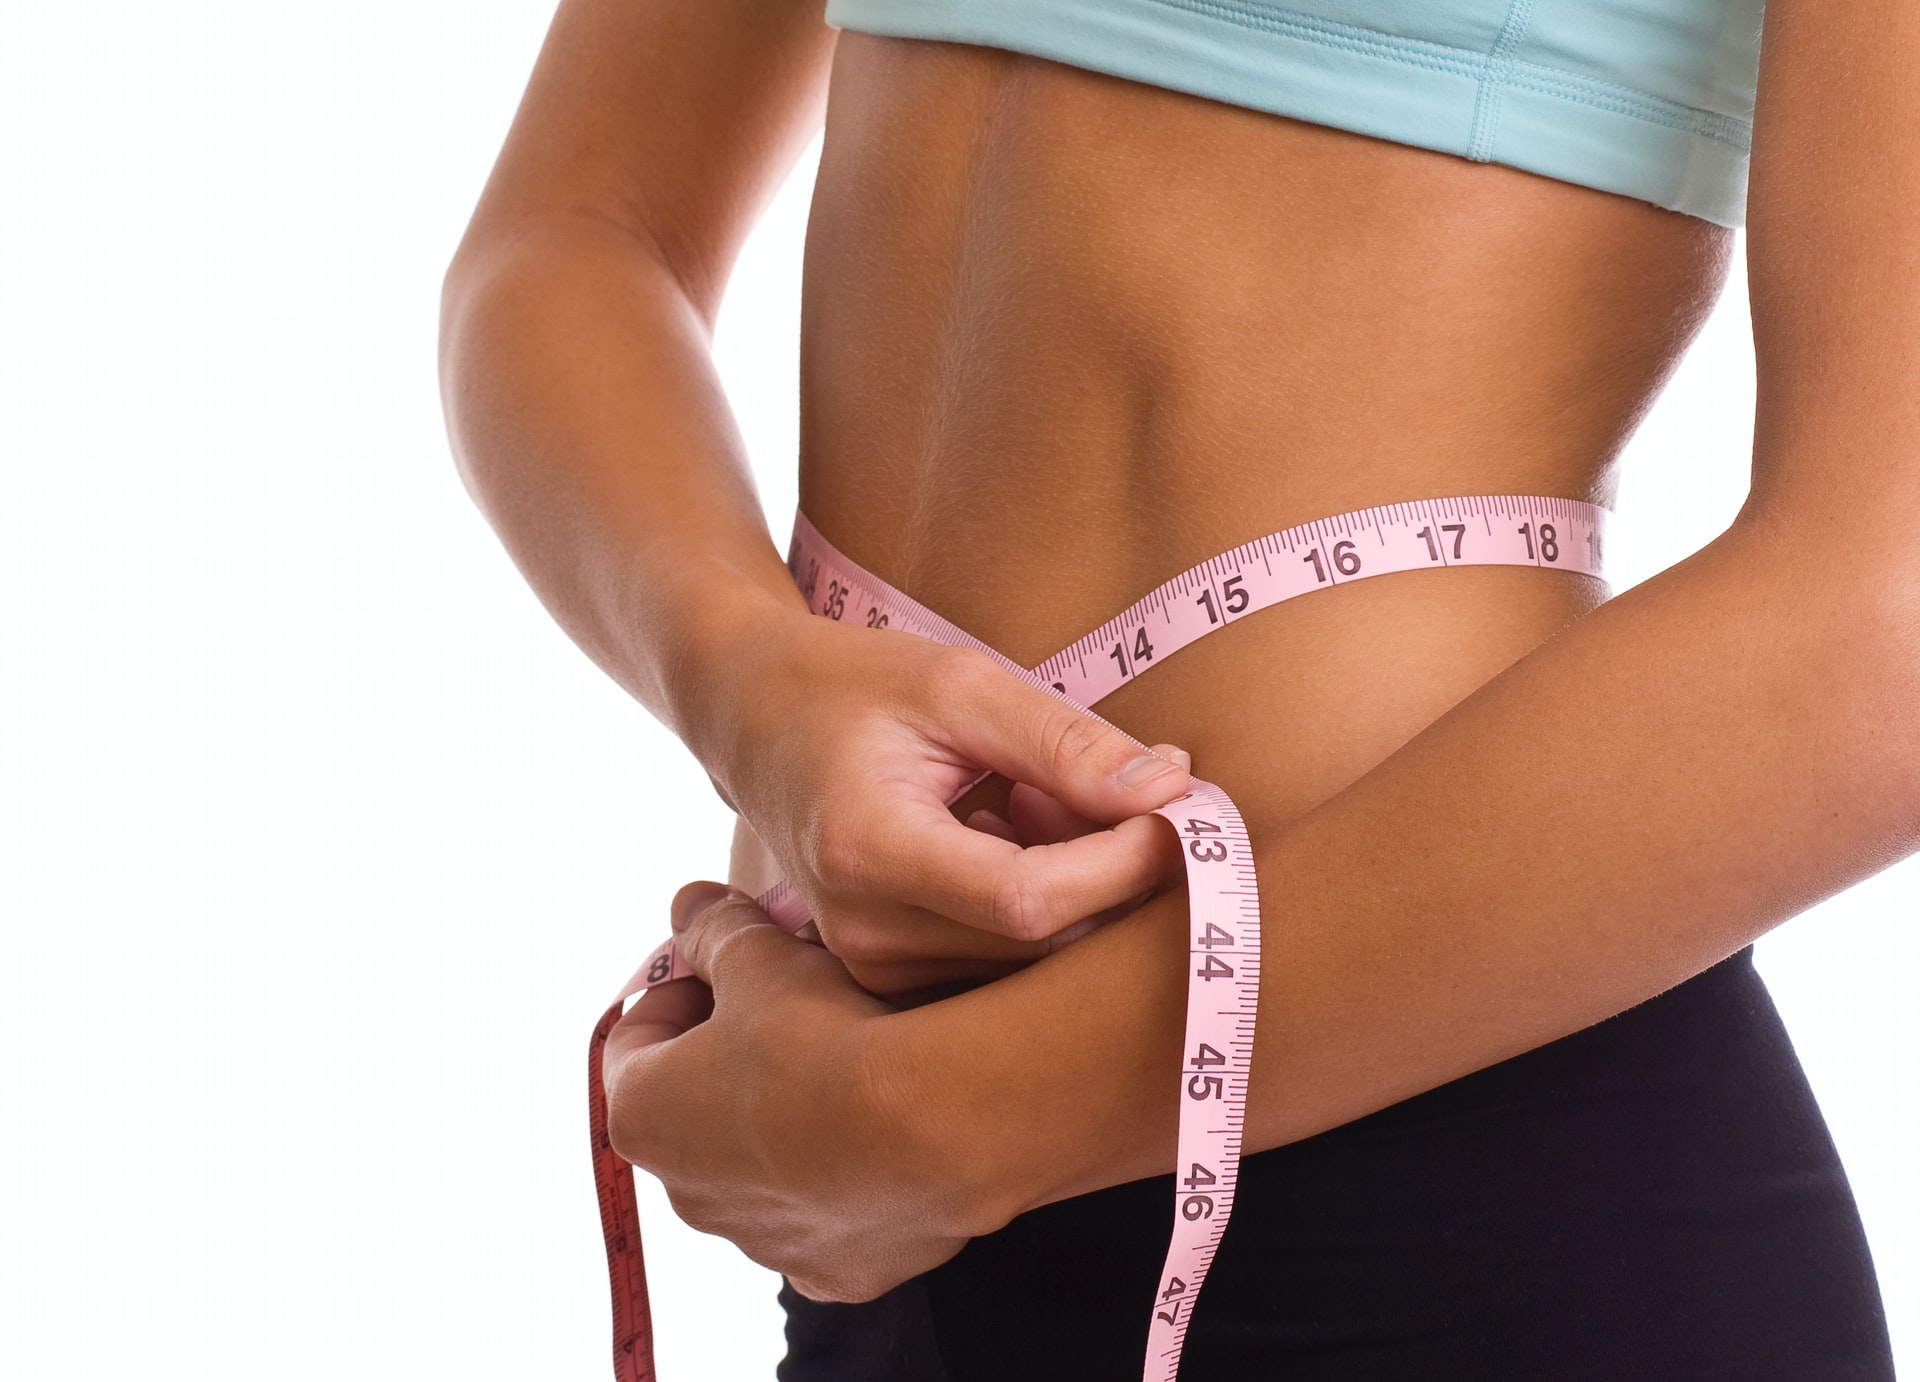 Lipotropic injections for weight loss: How they work